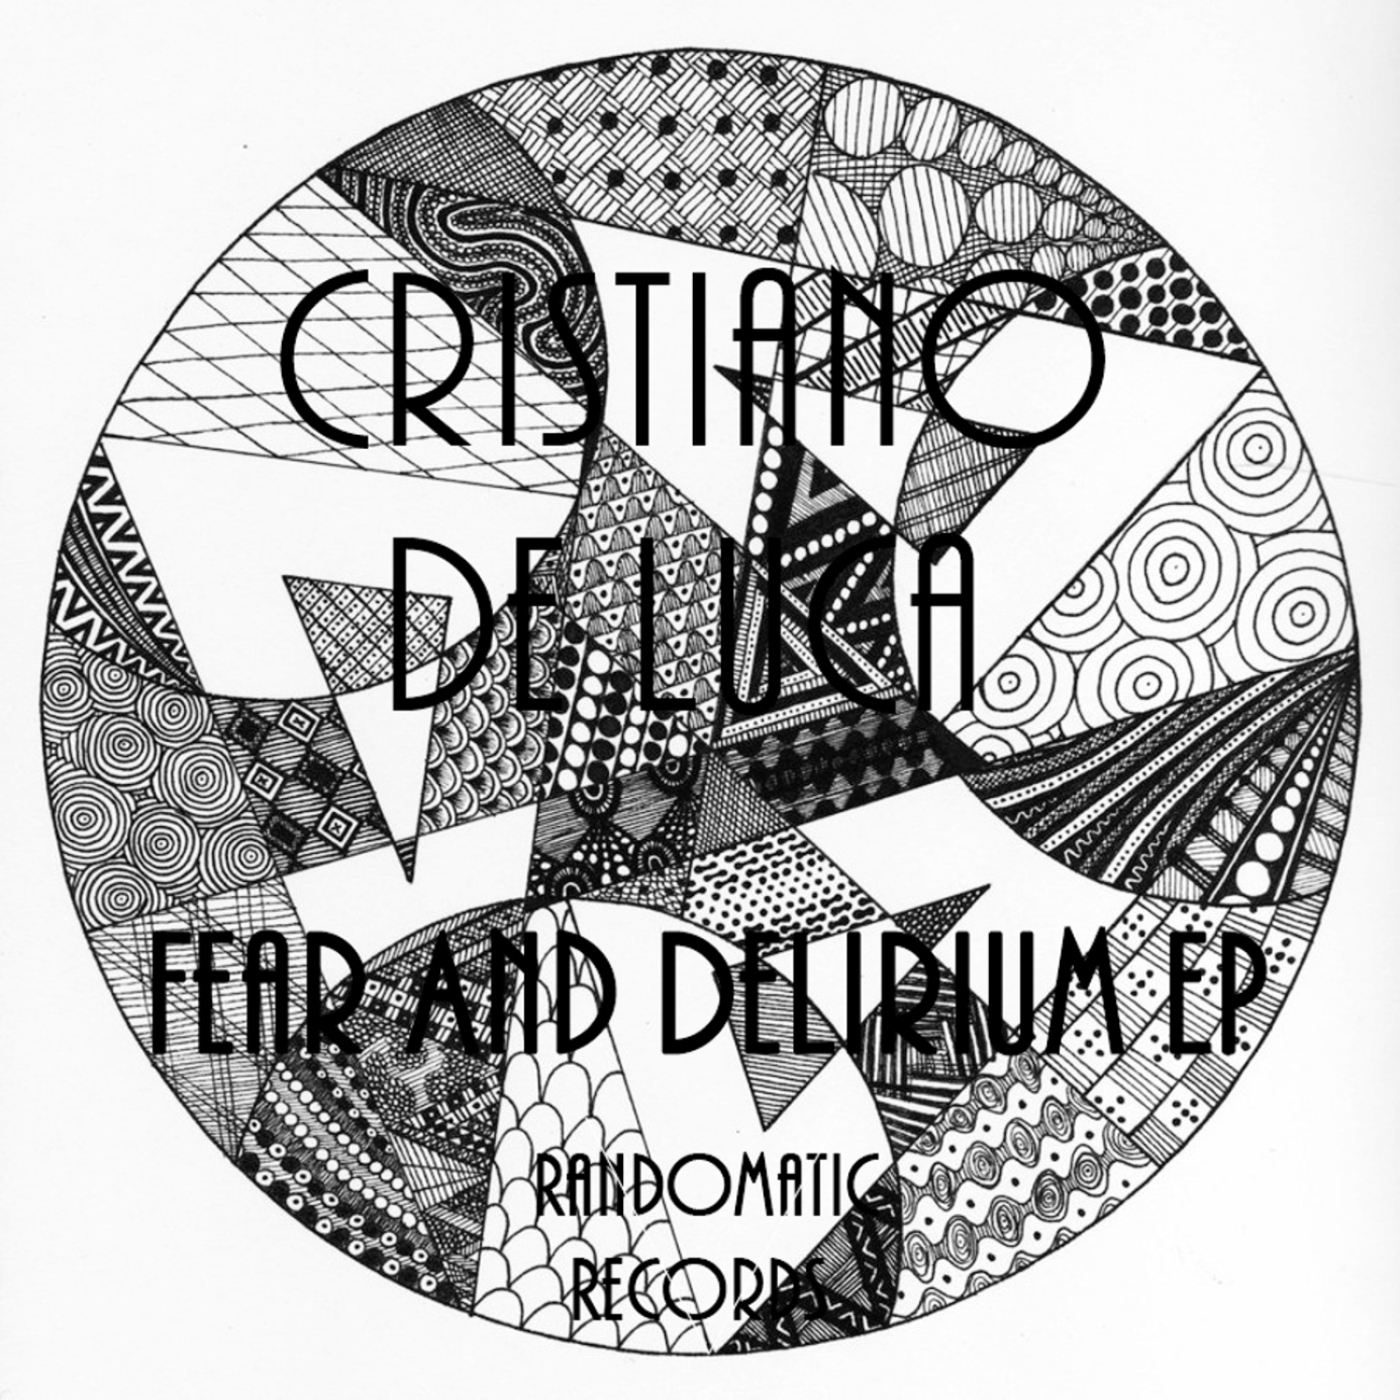 Cristiano De Luca - Fear And Delirium (Original mix)